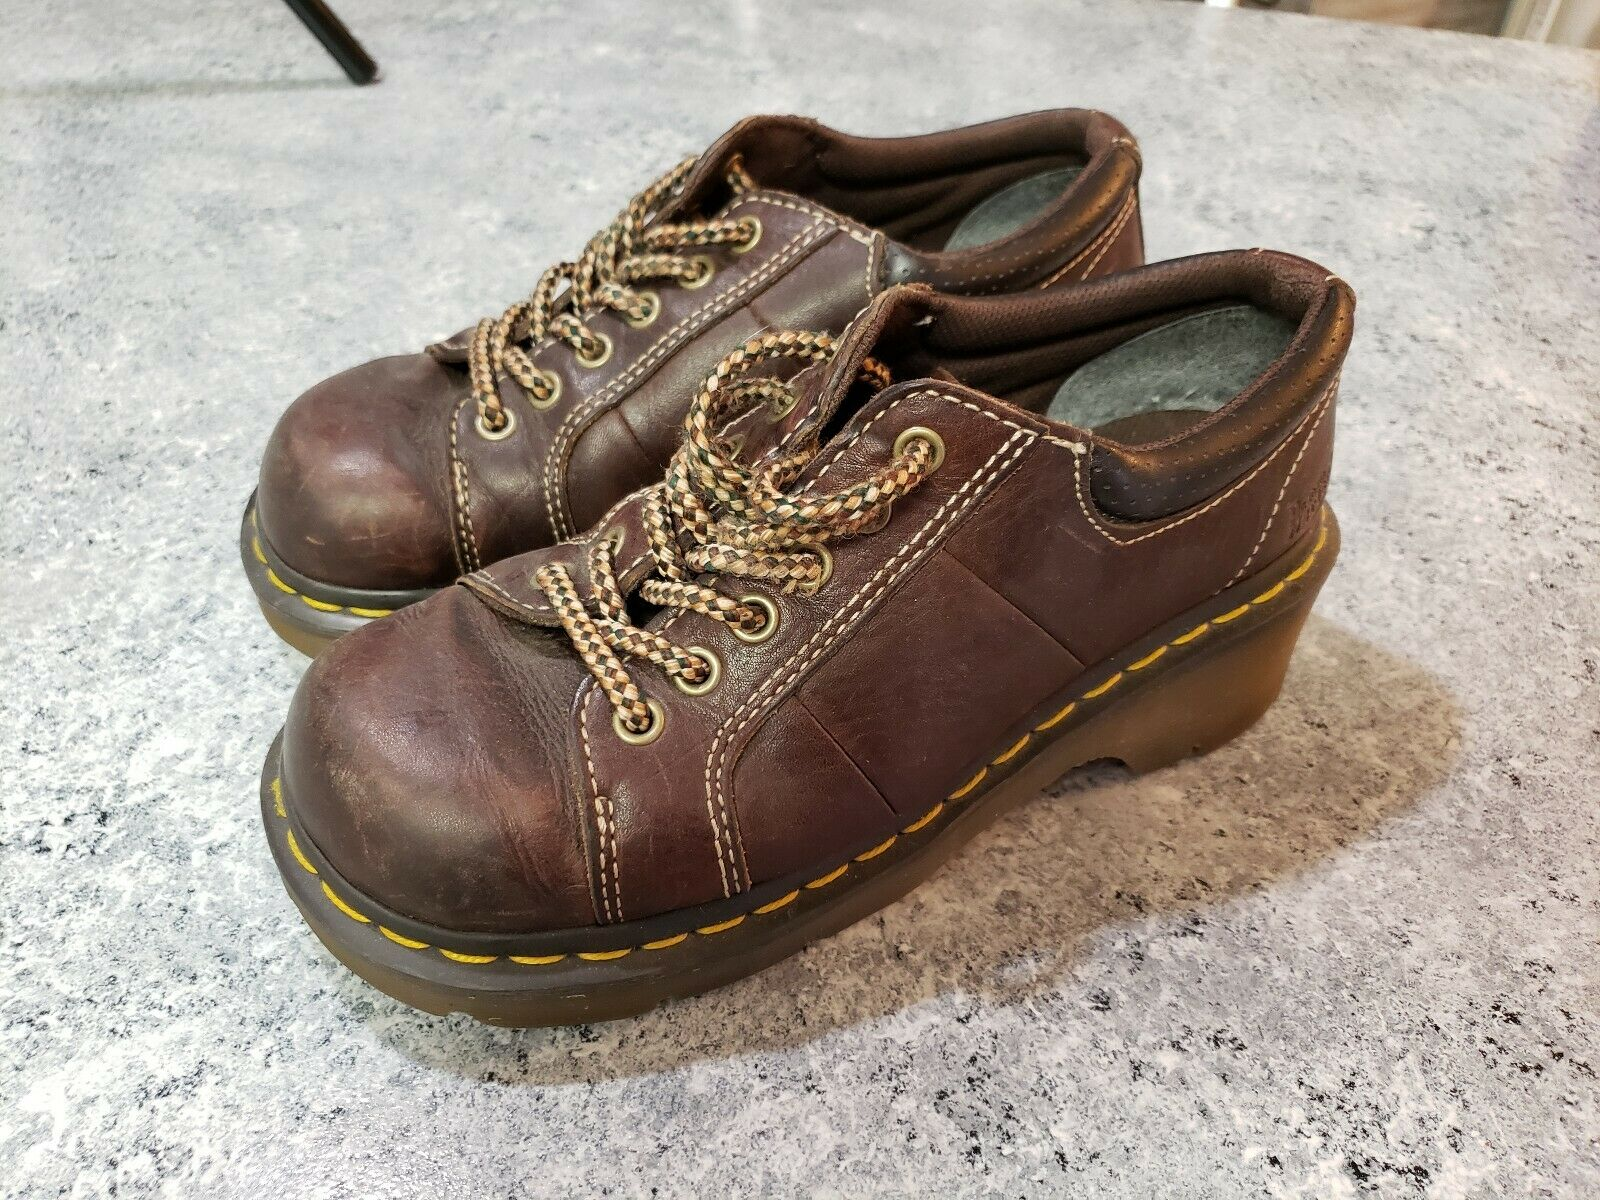 Dr Doc Martens Below Ankle Boots Womens US 6.5-7 No Slip Chunky England